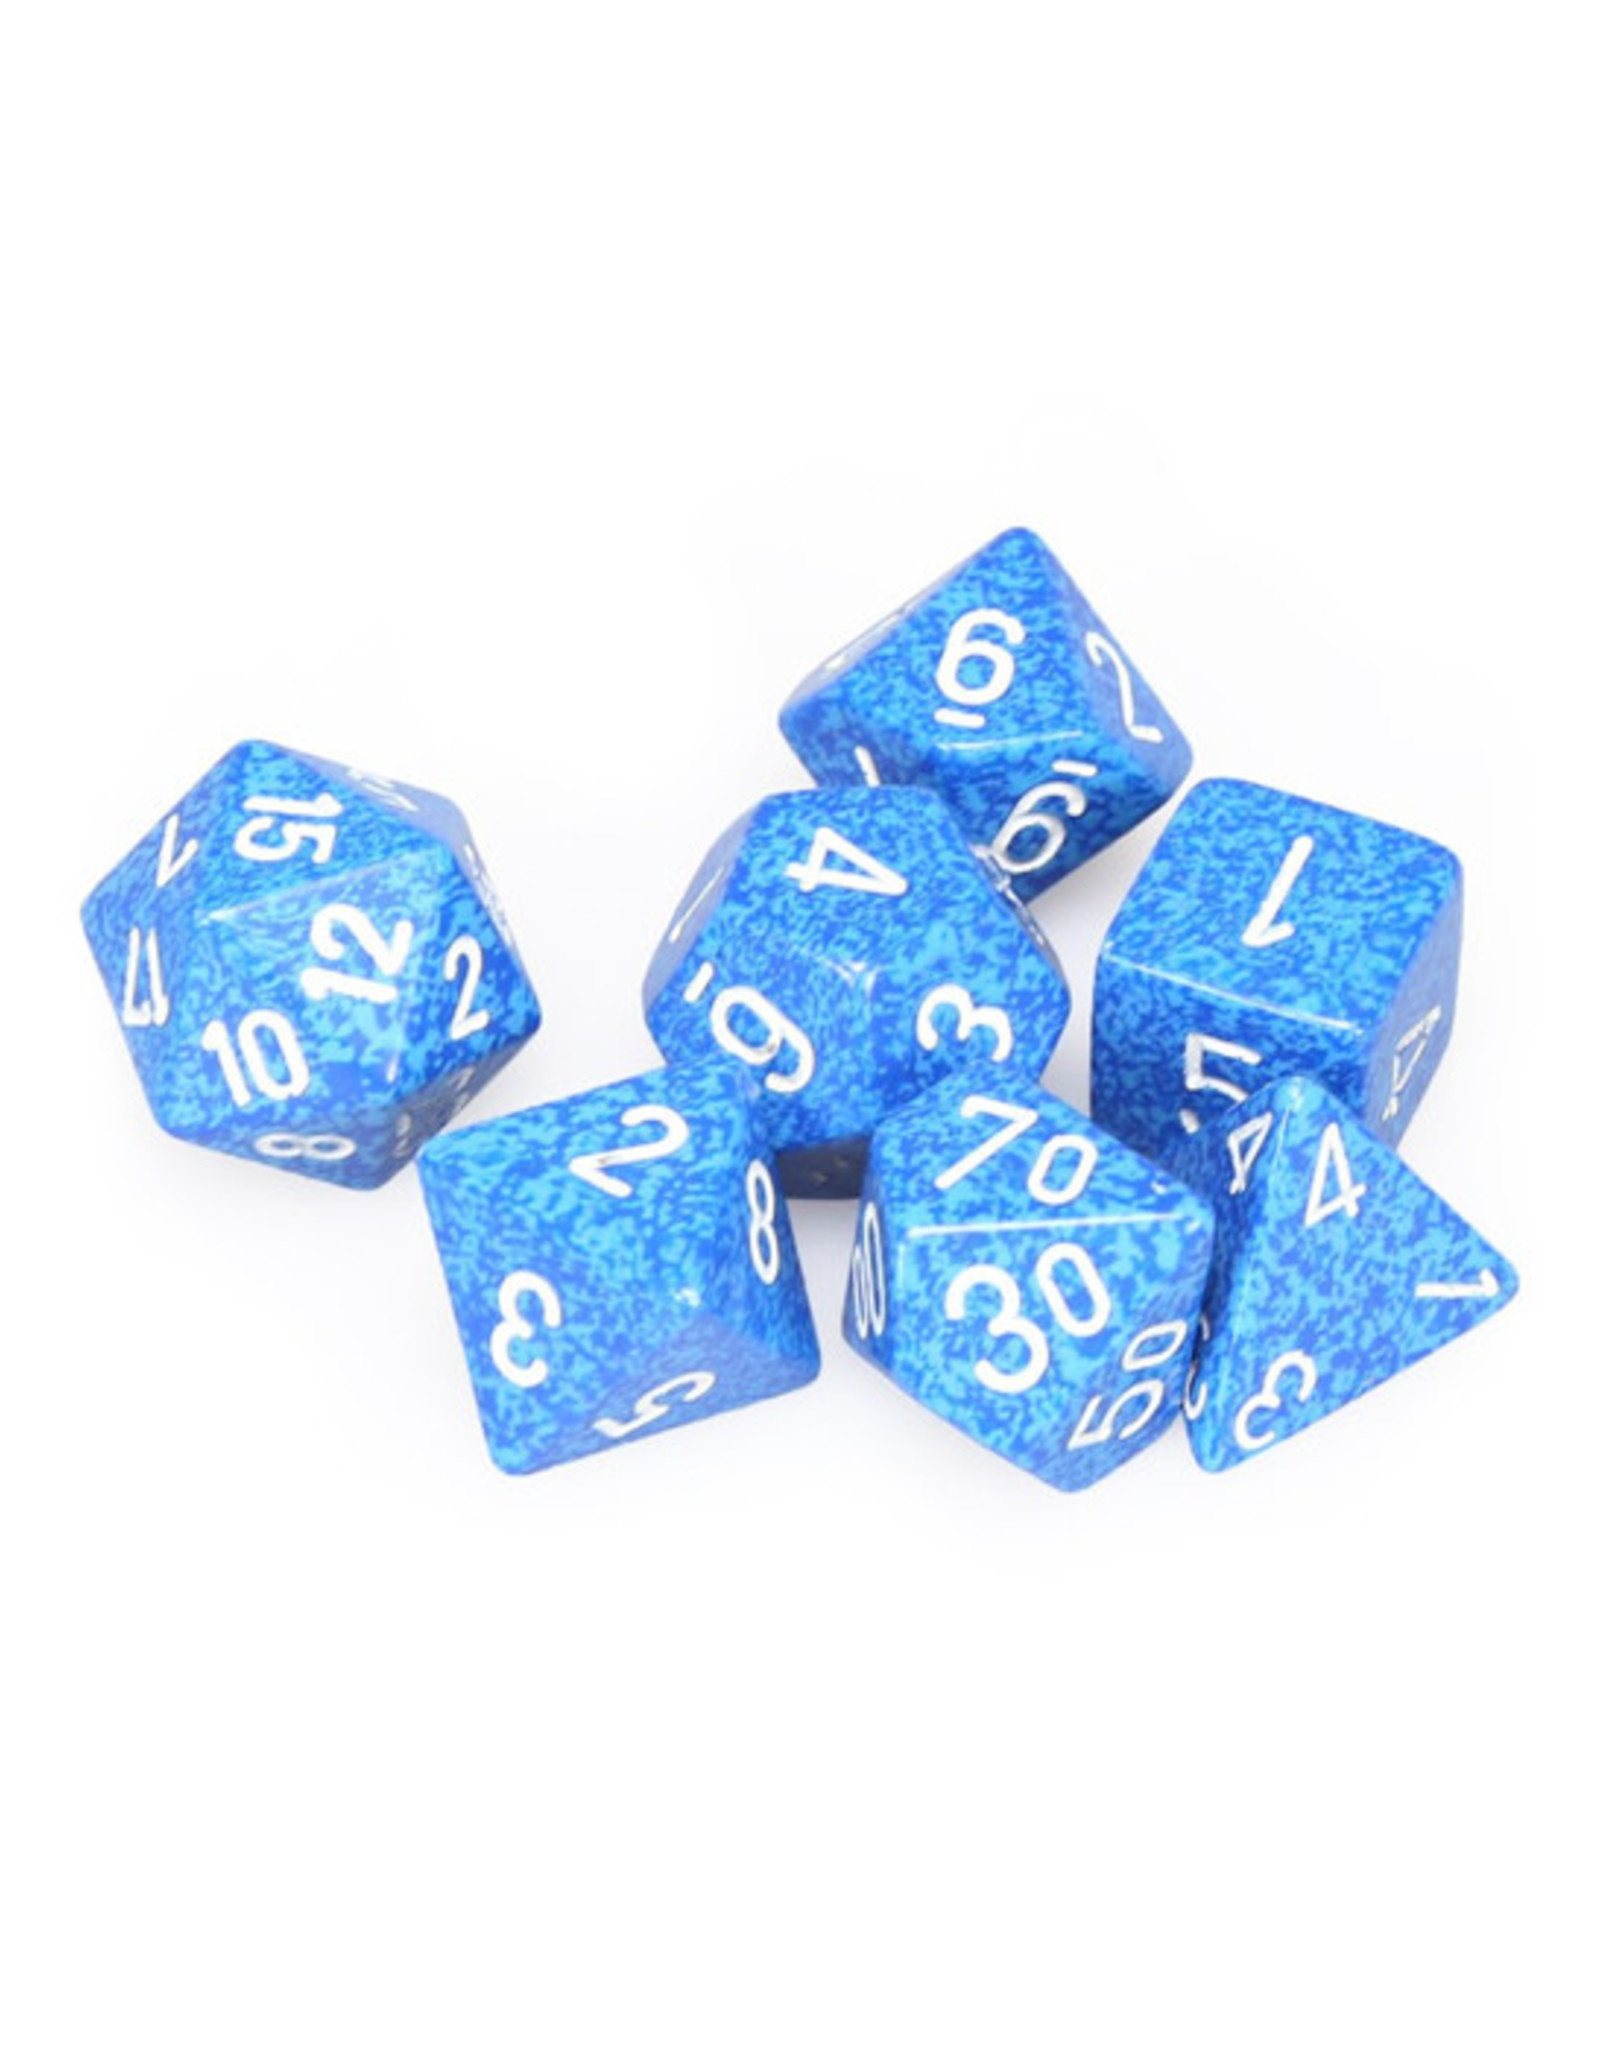 Chessex Chessex: Poly 7 Set - Speckled - Water